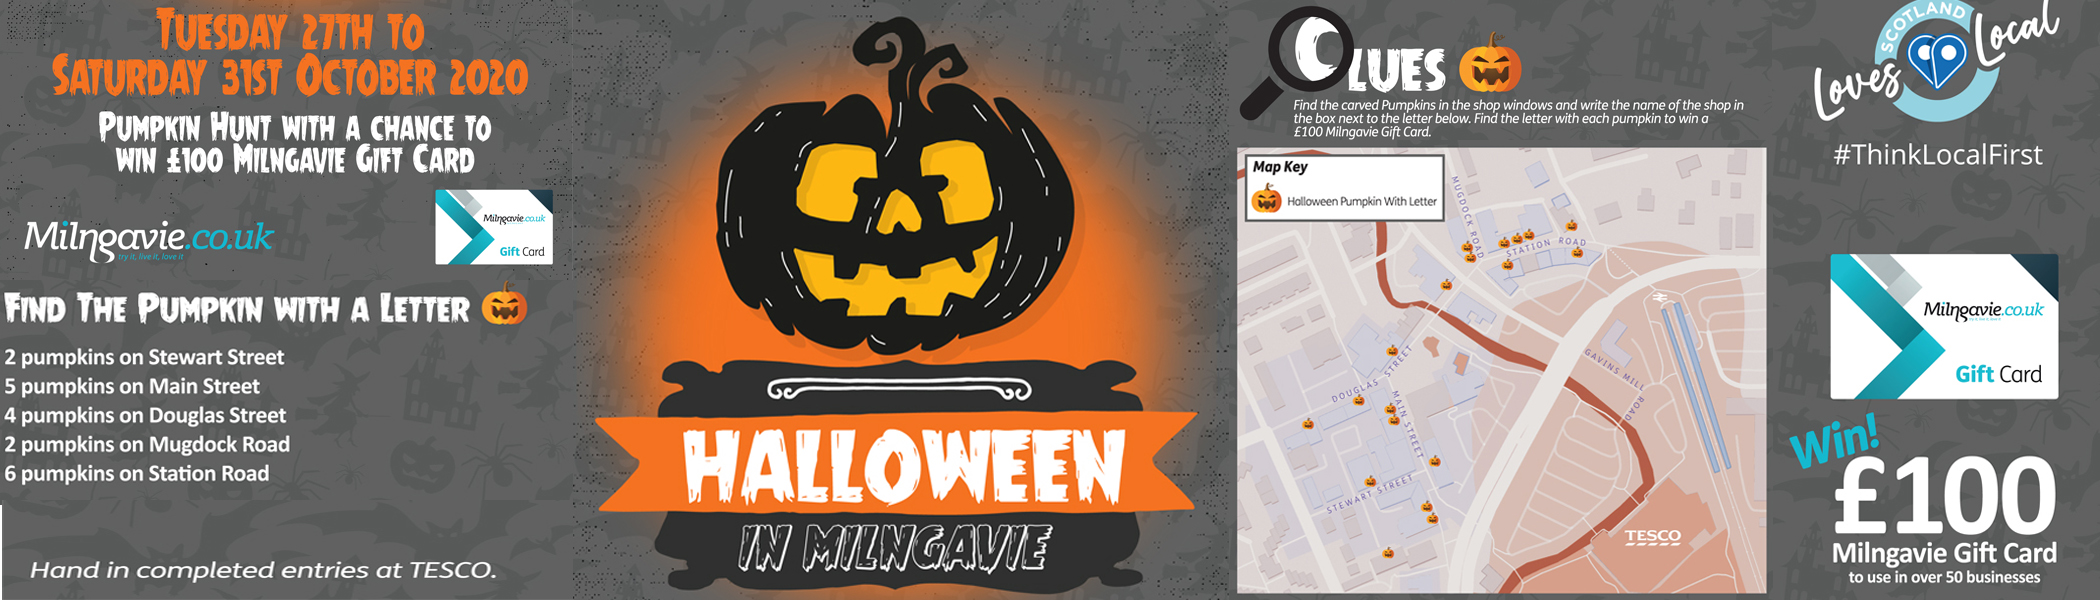 Milngavie Pumpkin Trail 2020